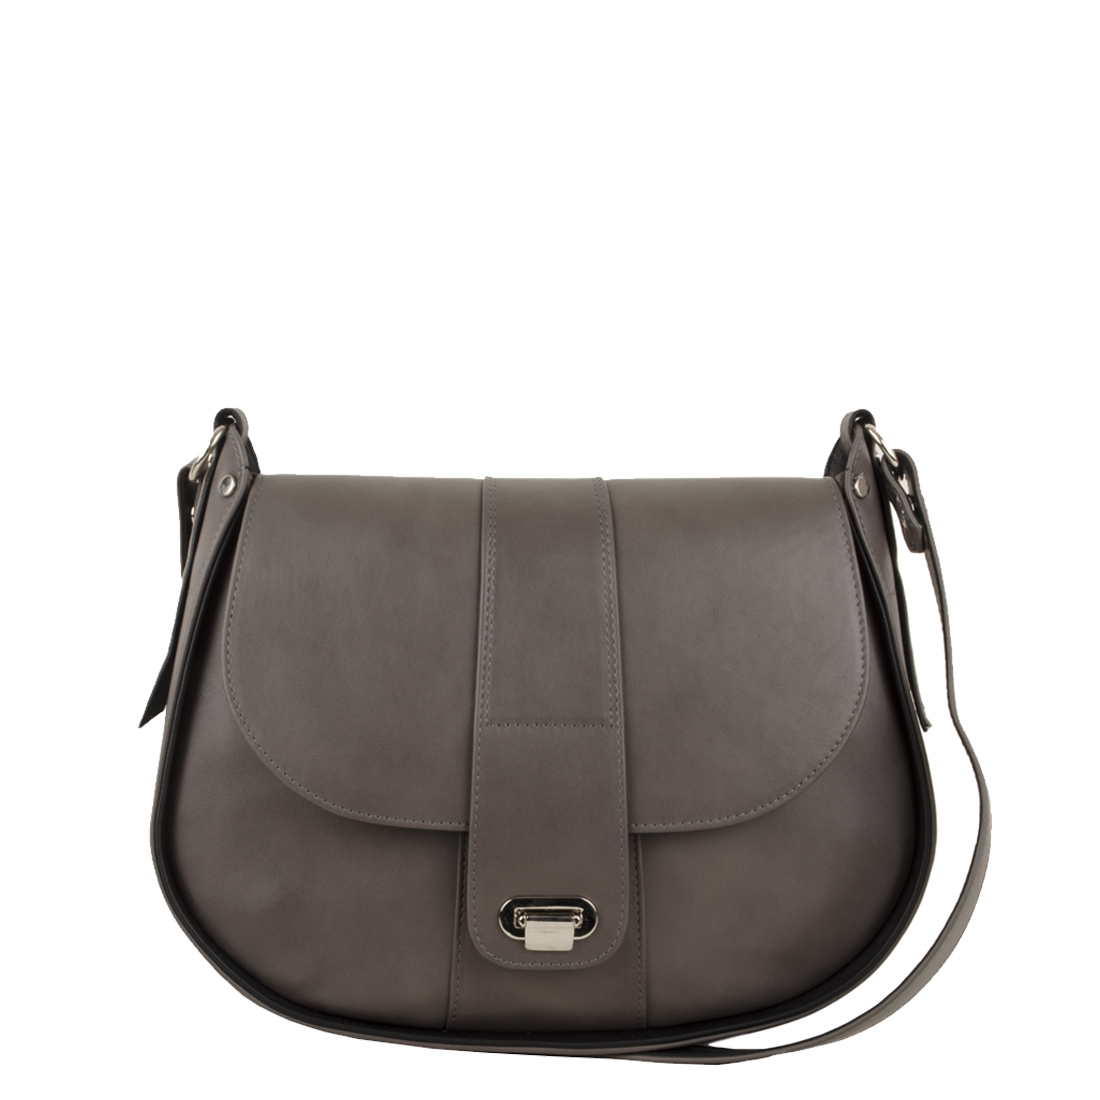 Freya Grigio Black Across Body Bag